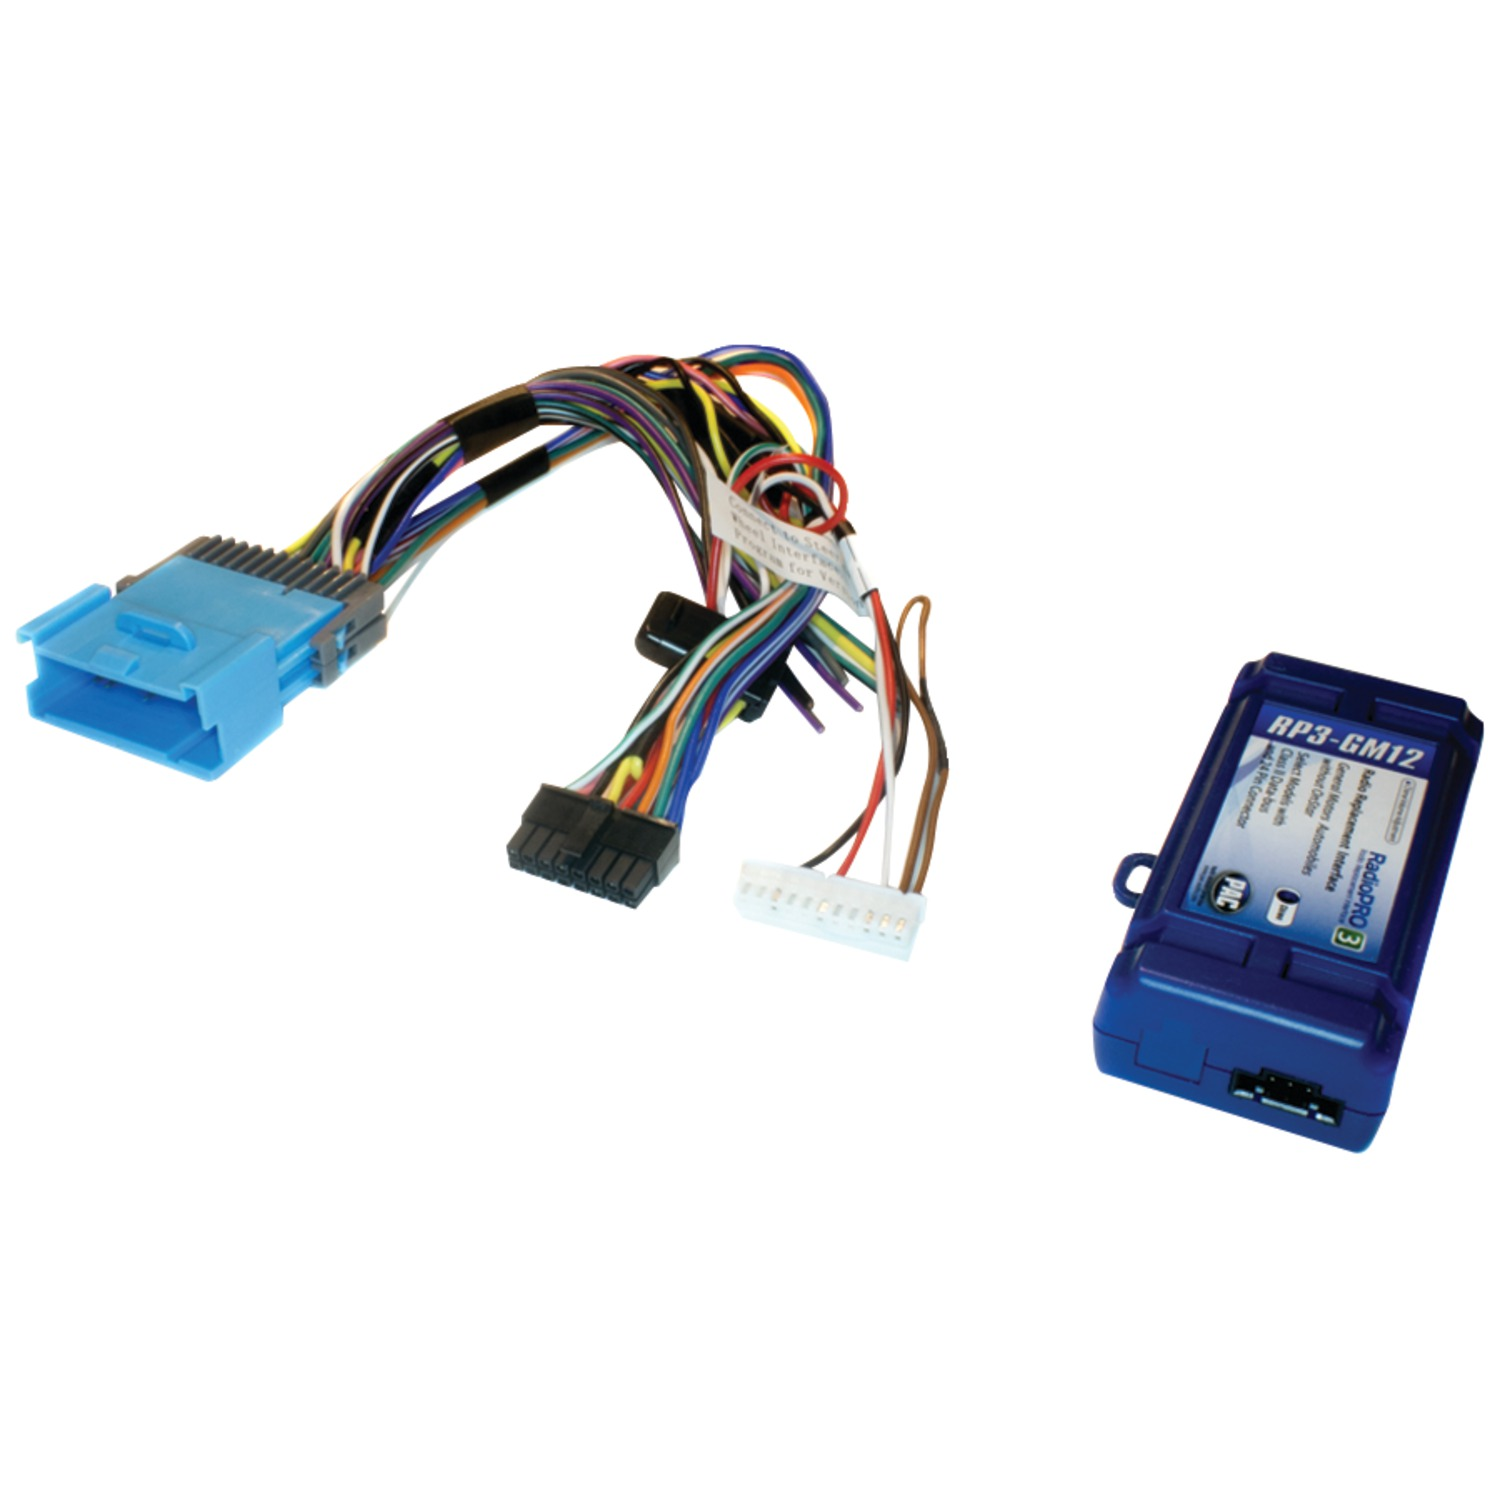 hight resolution of pac rp3 gm12 radio replacement interface for select gm r vehicles class